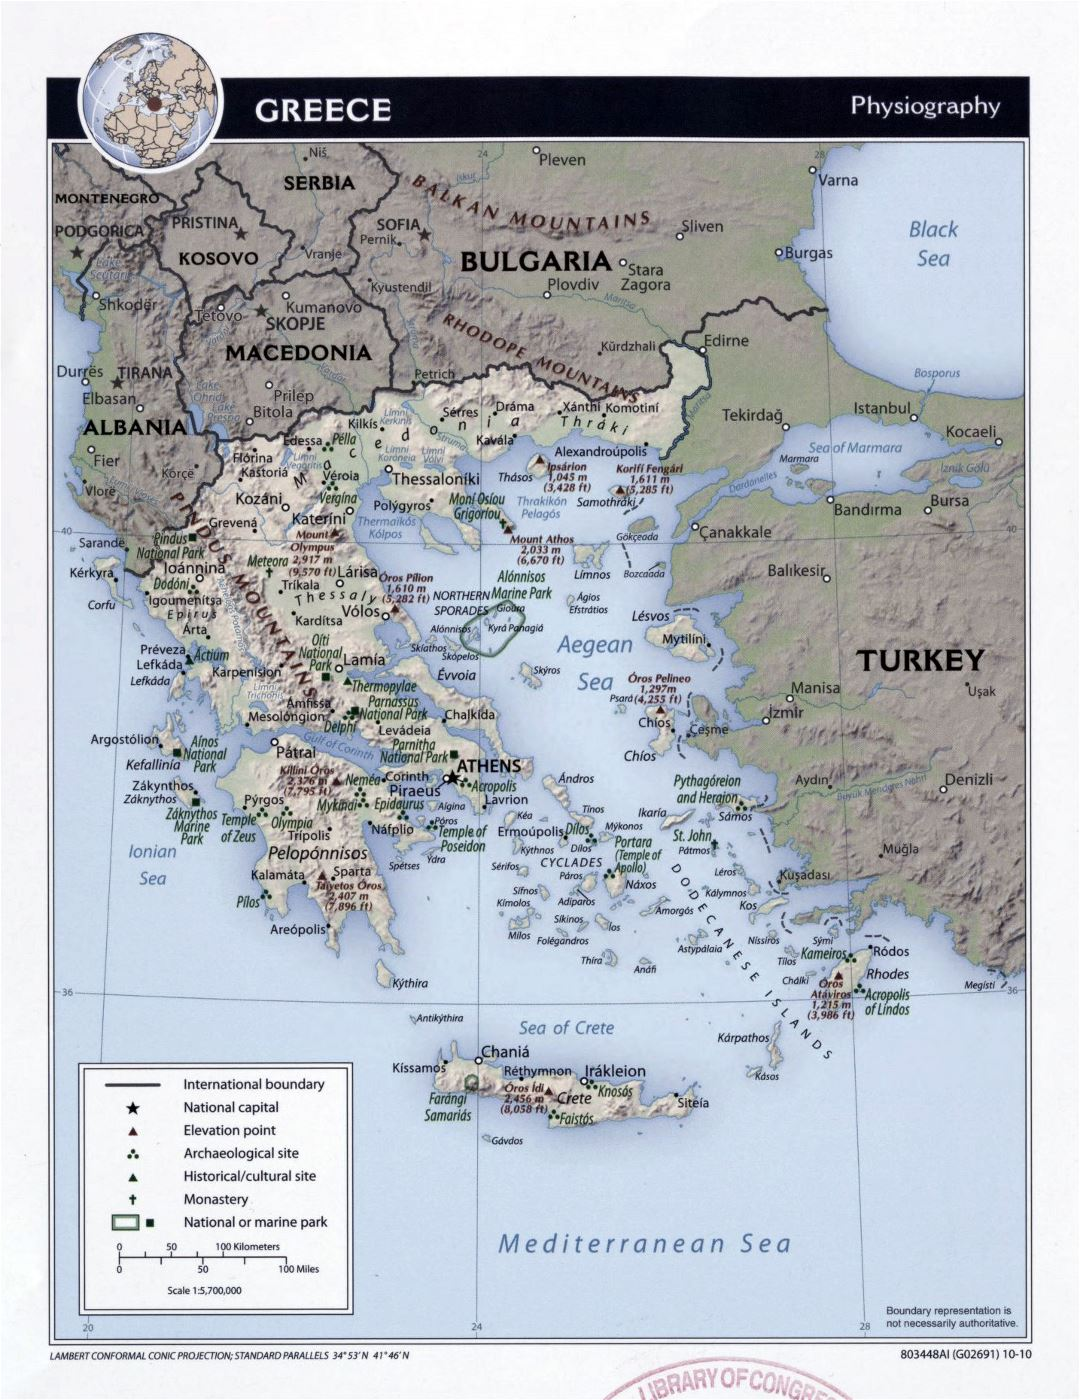 Large detailed physiography map of Greece - 2010